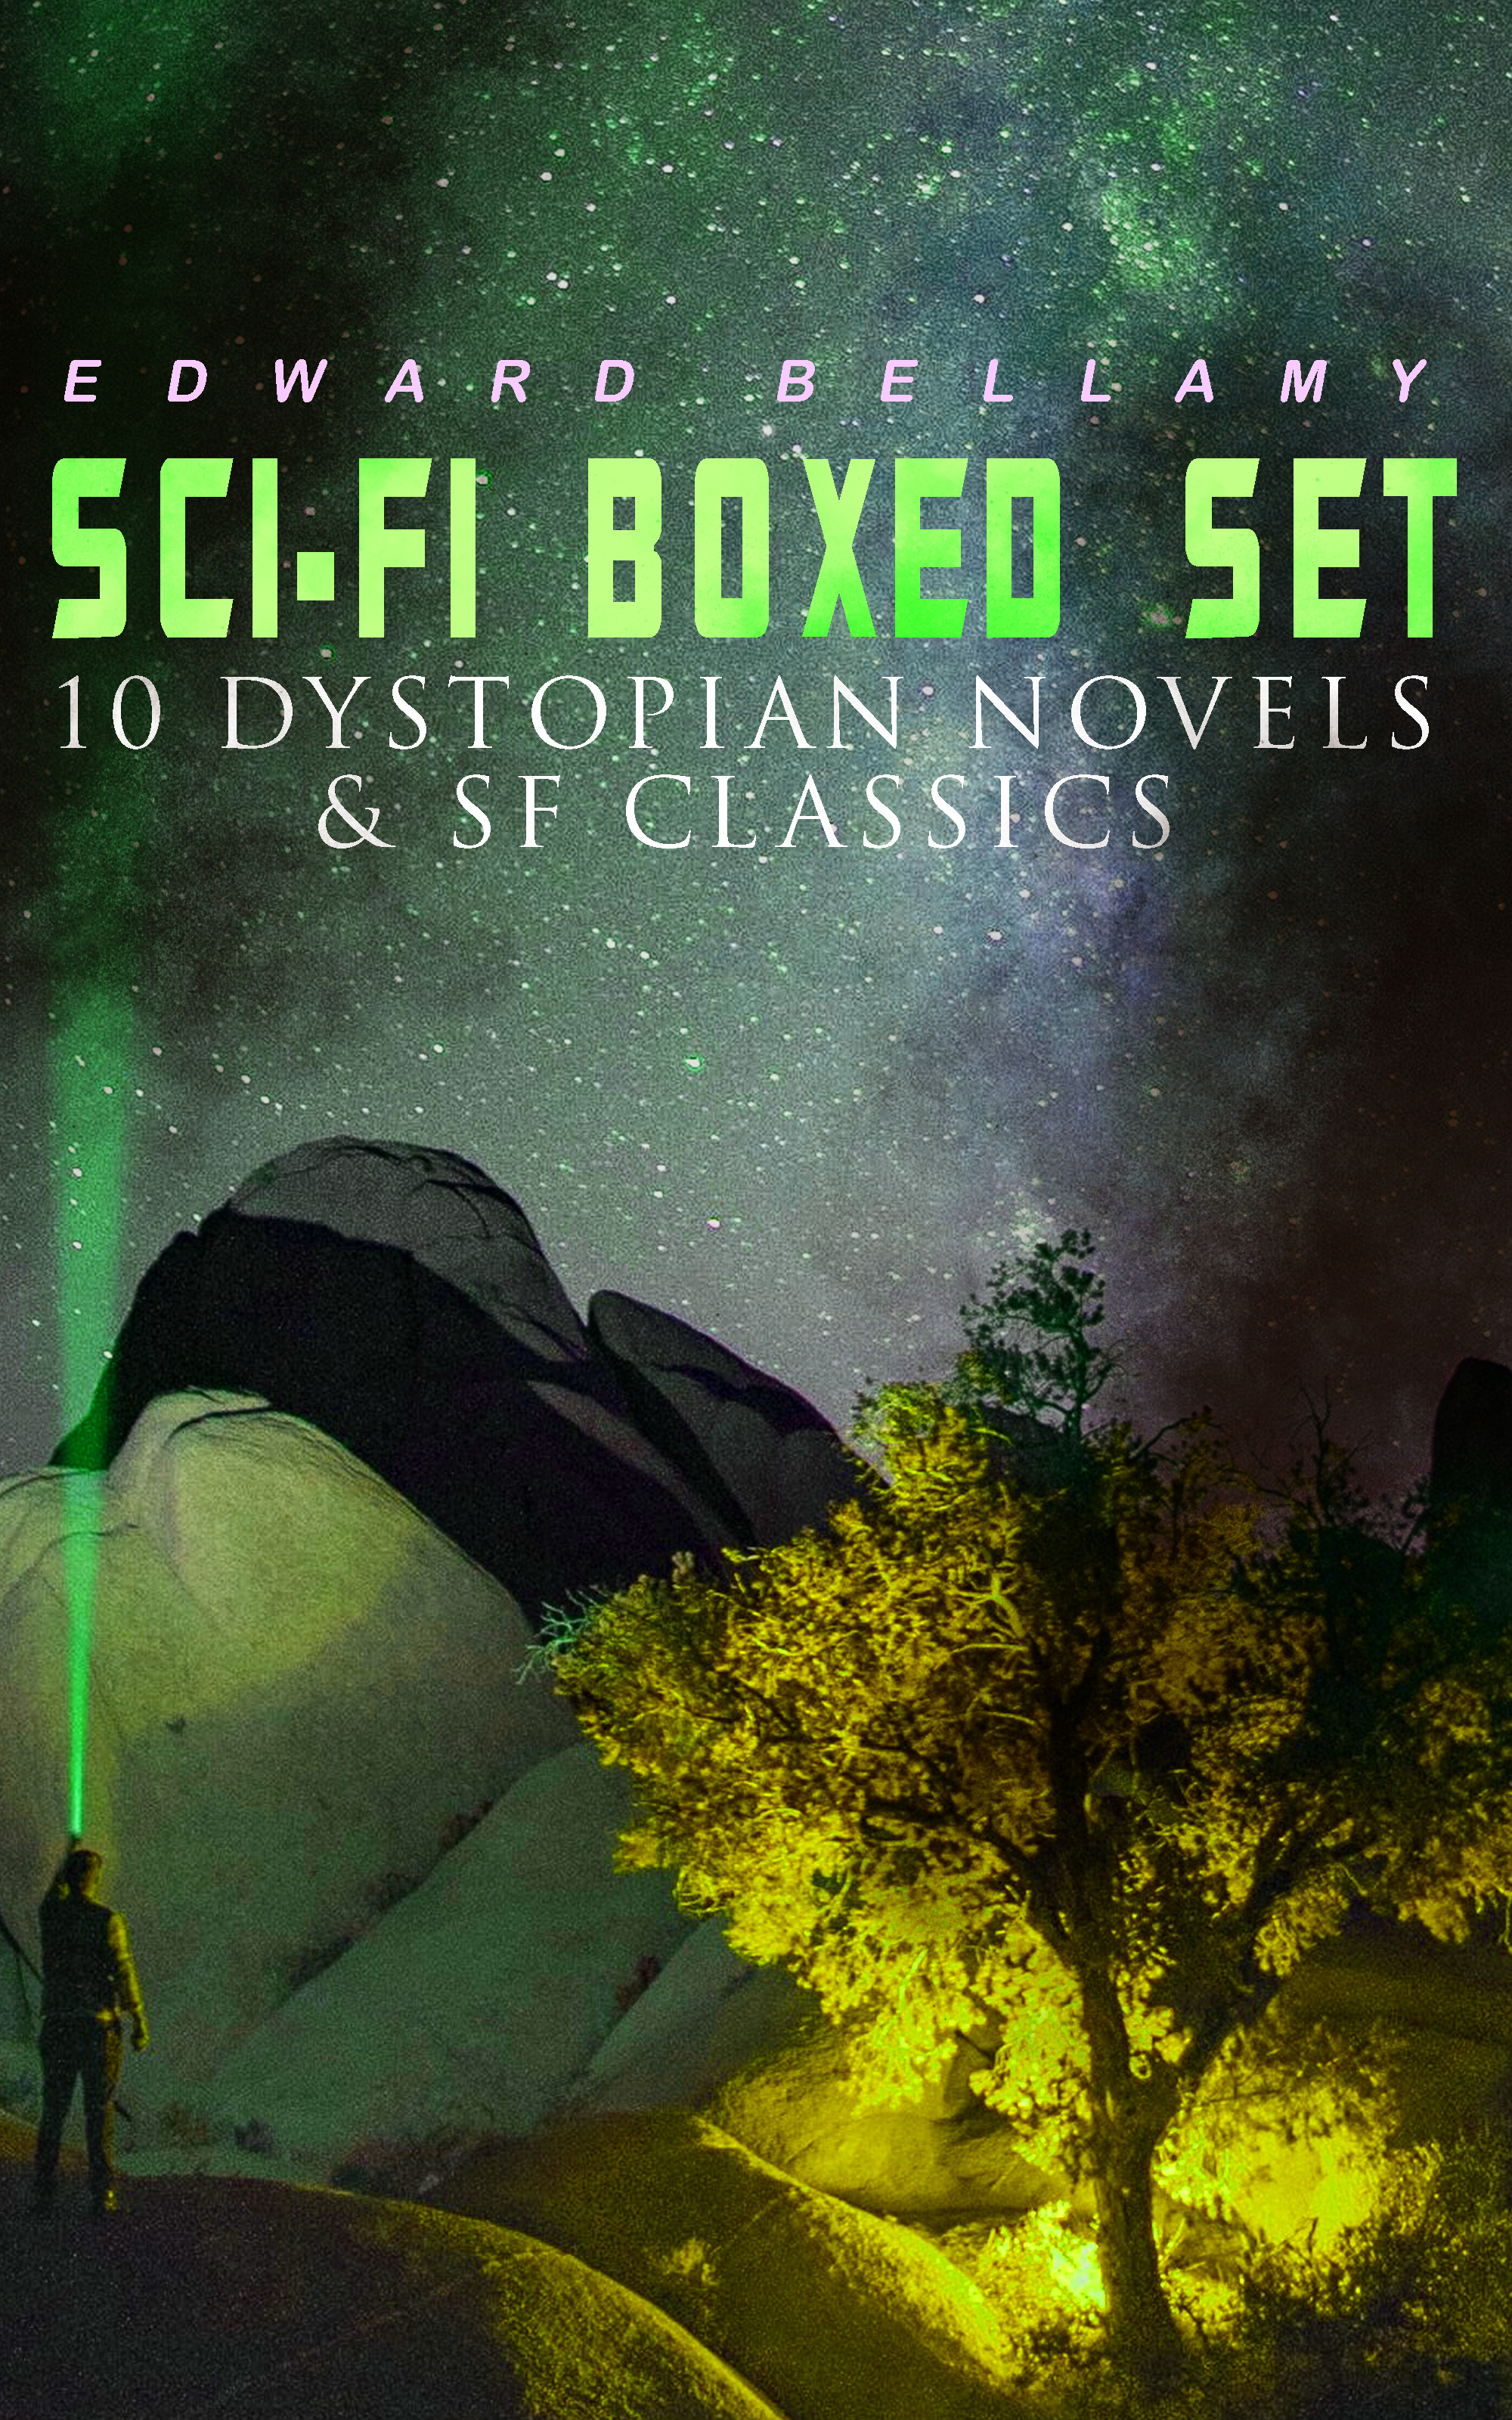 Edward Bellamy Sci-Fi Boxed Set: 10 Dystopian Novels & SF Classics